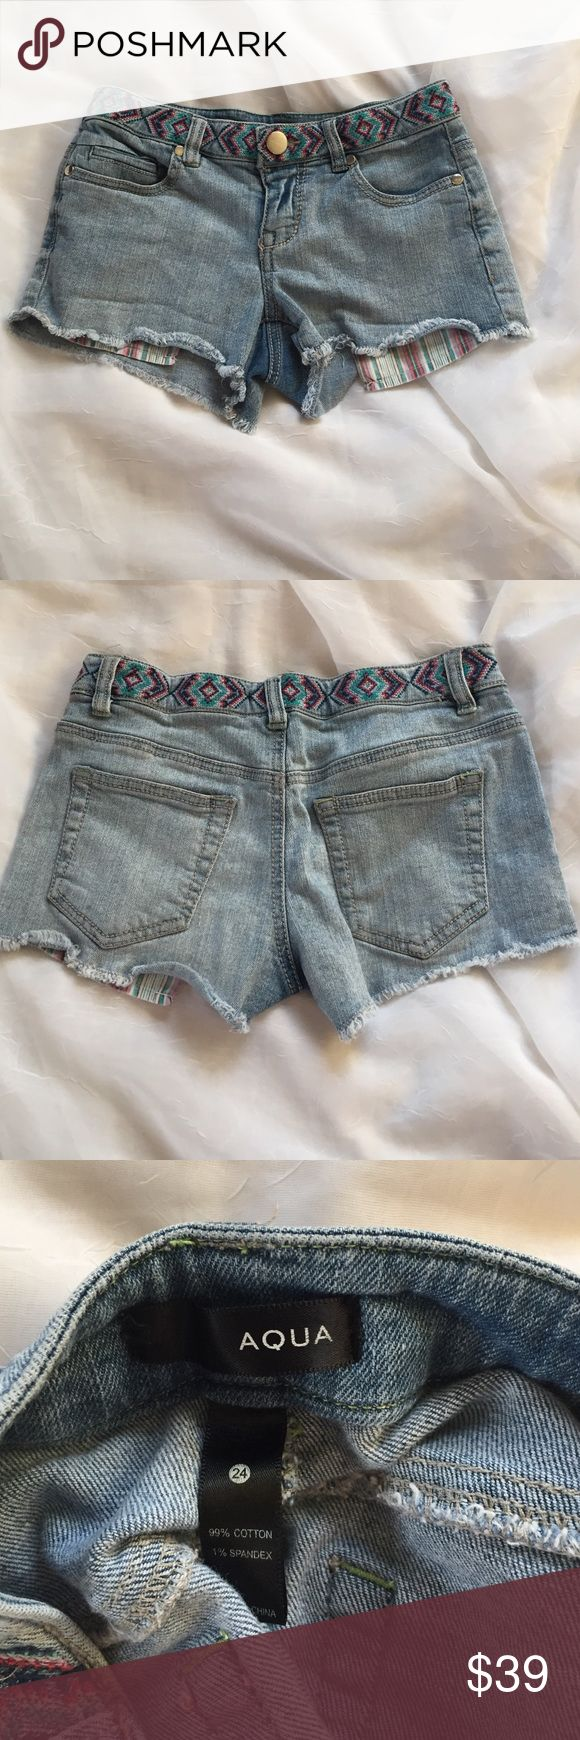 """Aqua denim cutoff shorts, size 24 Aqua Jean shorts in a size 24. Striped peekaboo pockets and an embroidered waistband are features. Waist is 26"""", rise 7"""", and total length 8"""". I do not model or trade. 🦊 Please use measurements provided and ask any questions prior to purchasing. I want happy customers. 😊 Aqua Shorts Jean Shorts"""